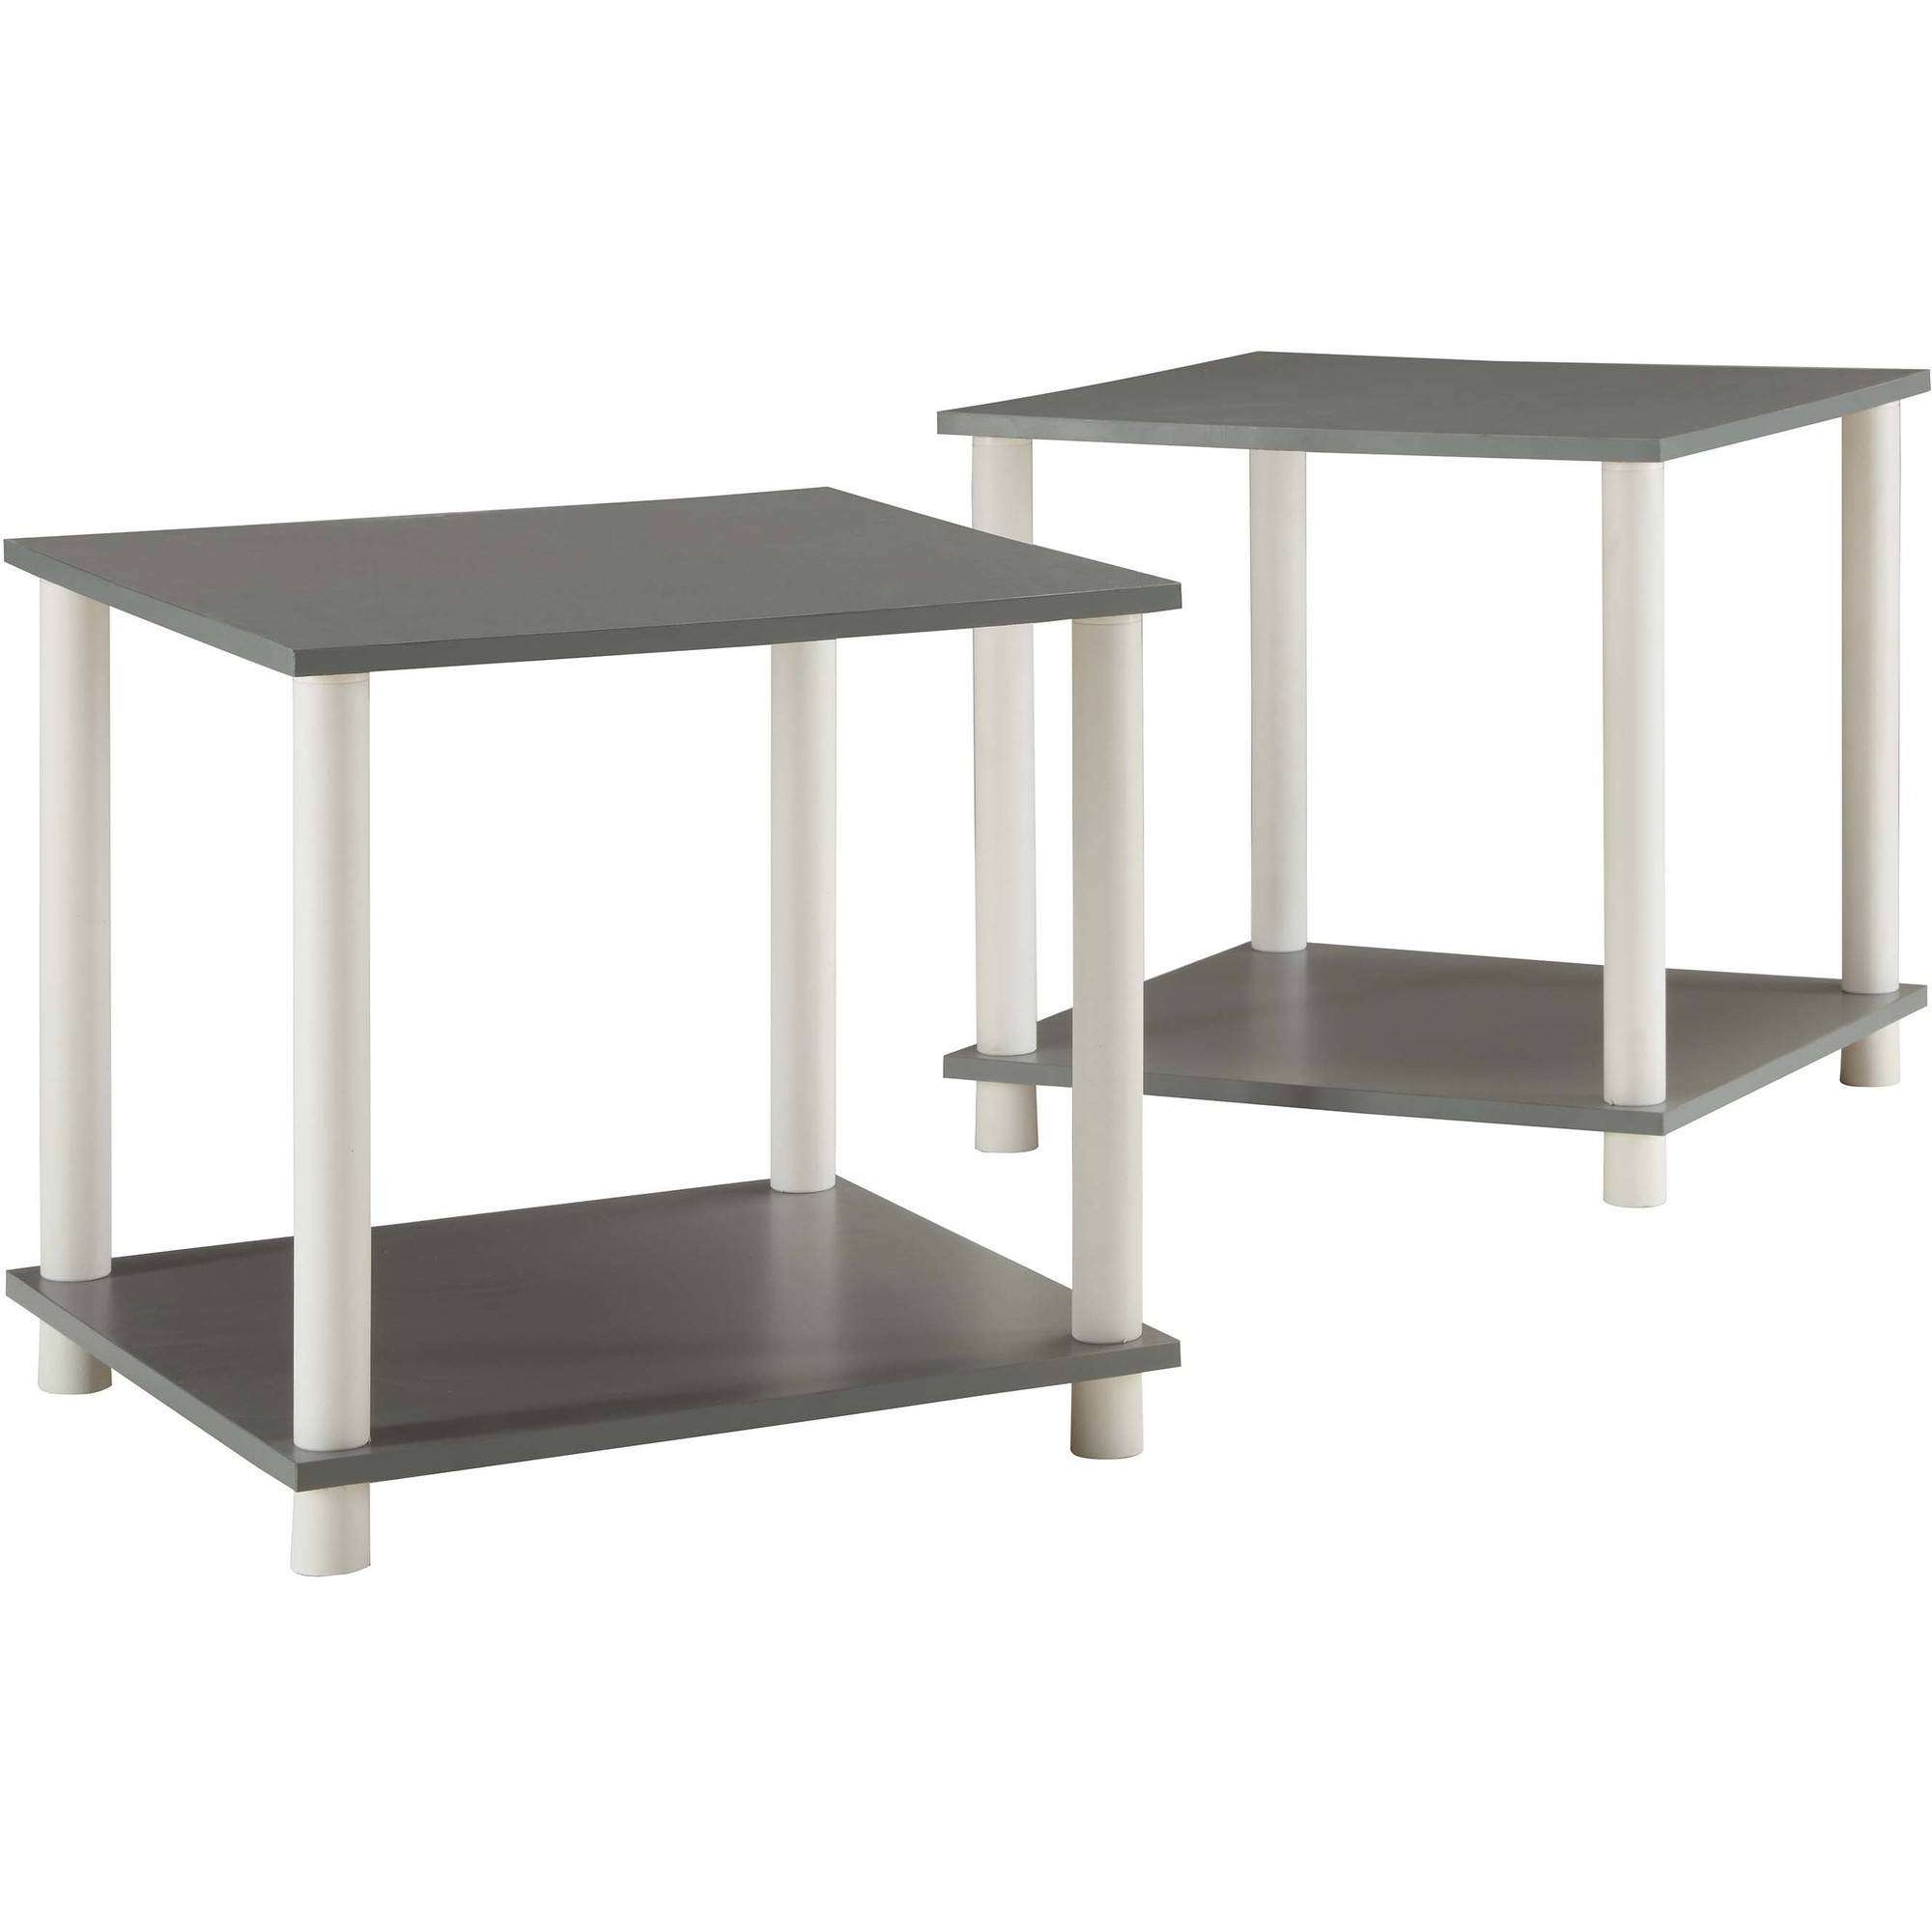 Mainstays No Tools Single Cube Storage Shelf Side Tables, Set Of 2 Pertaining To Current White Cube Coffee Tables (View 9 of 20)